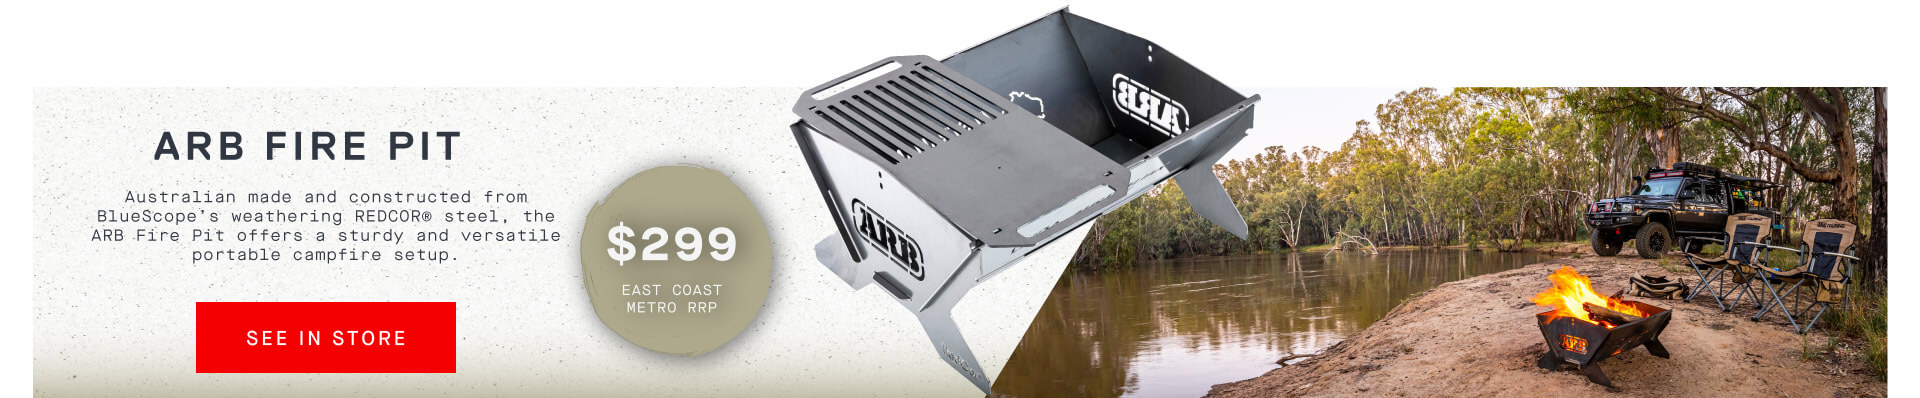 ARB Fire Pit - Find In Store